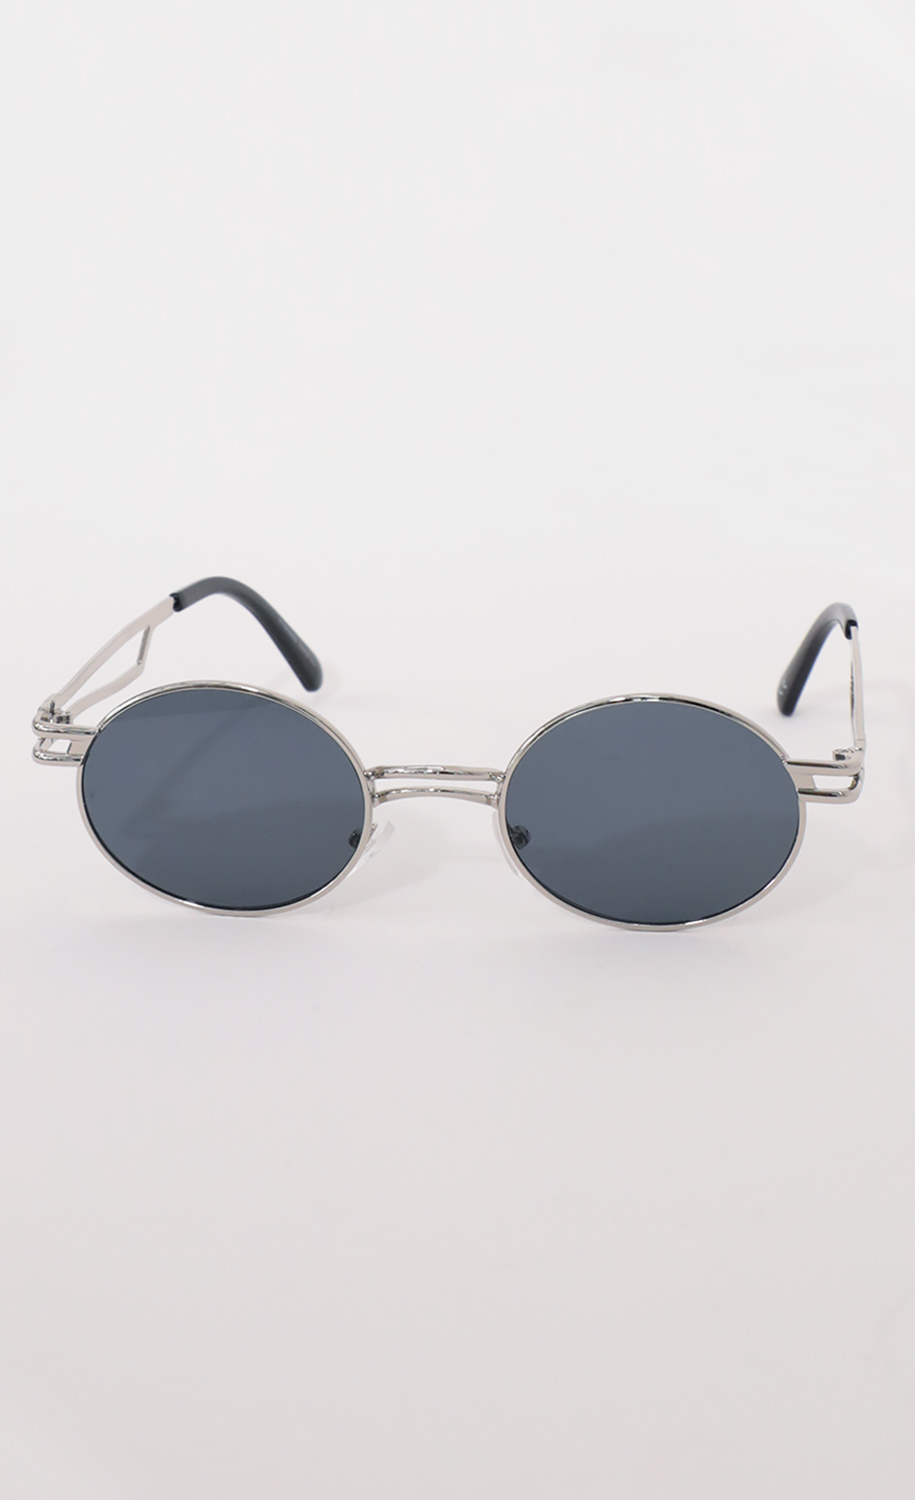 Metal Double Temple Accent Oval Round Silver Sunglasses in Smoke